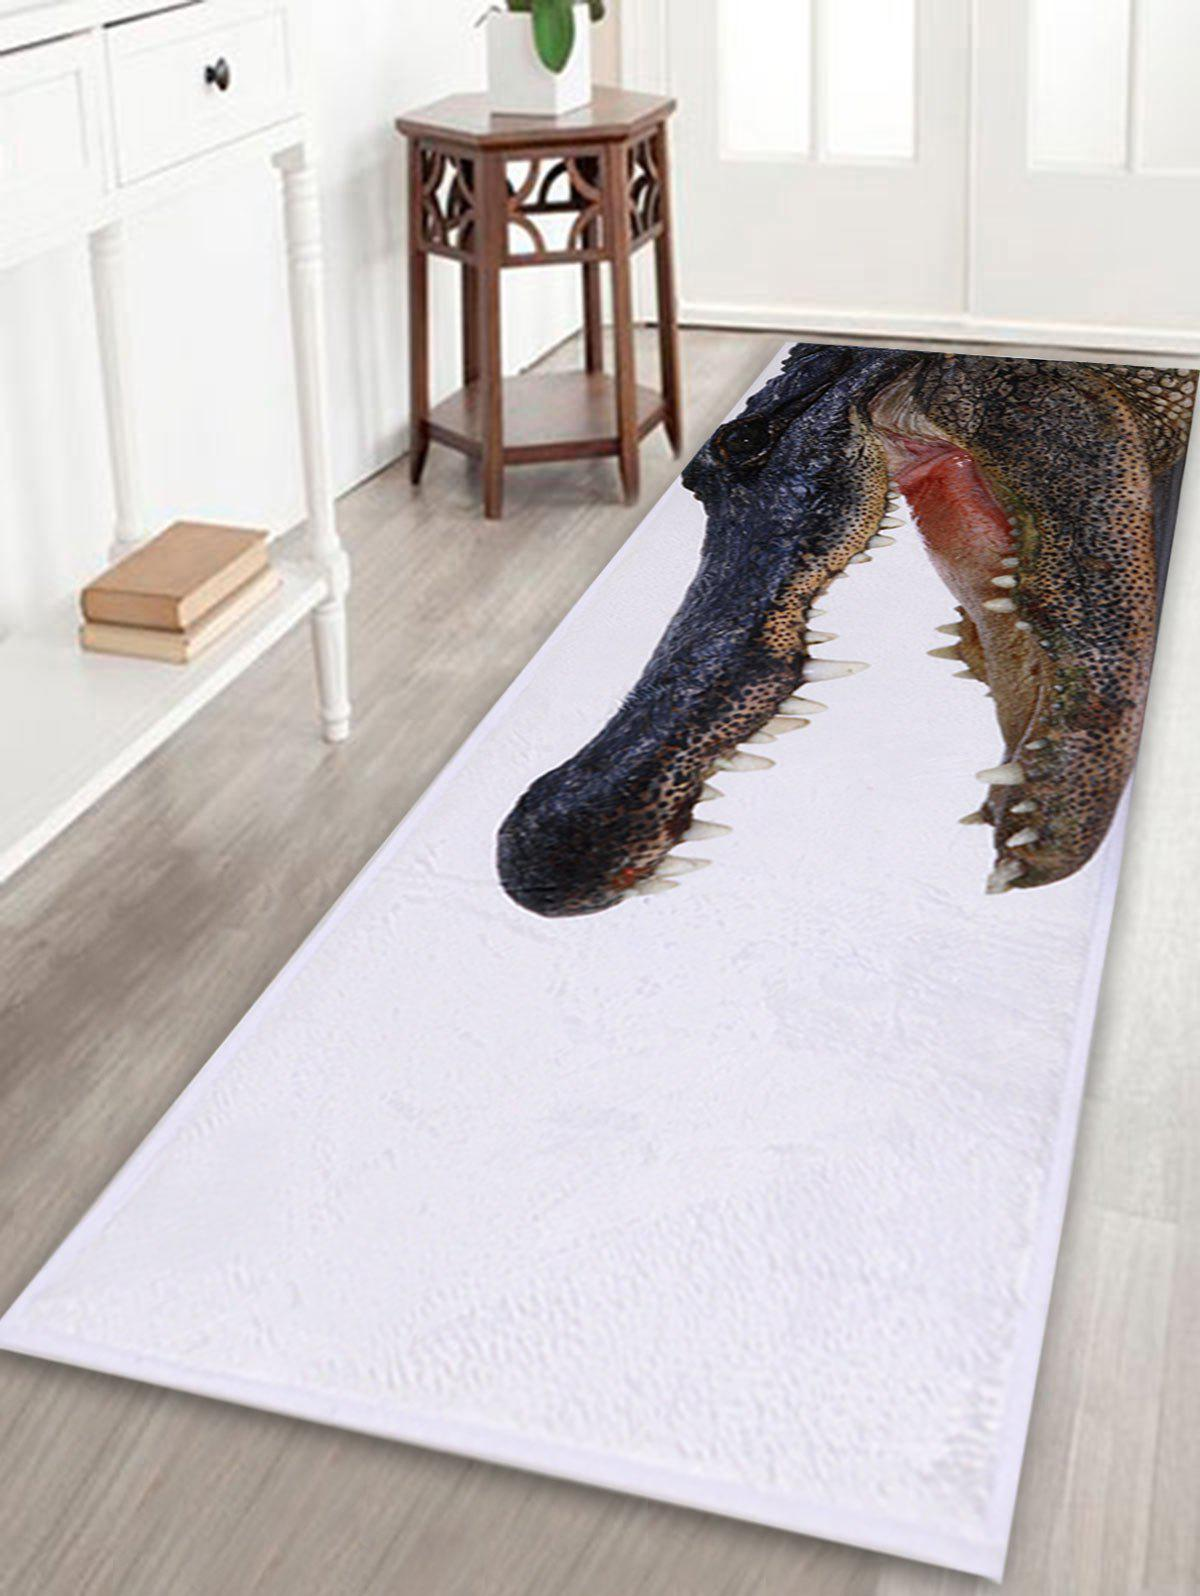 Kitchen bathroom floor crocodile large area rug white w for Large kitchen area rugs